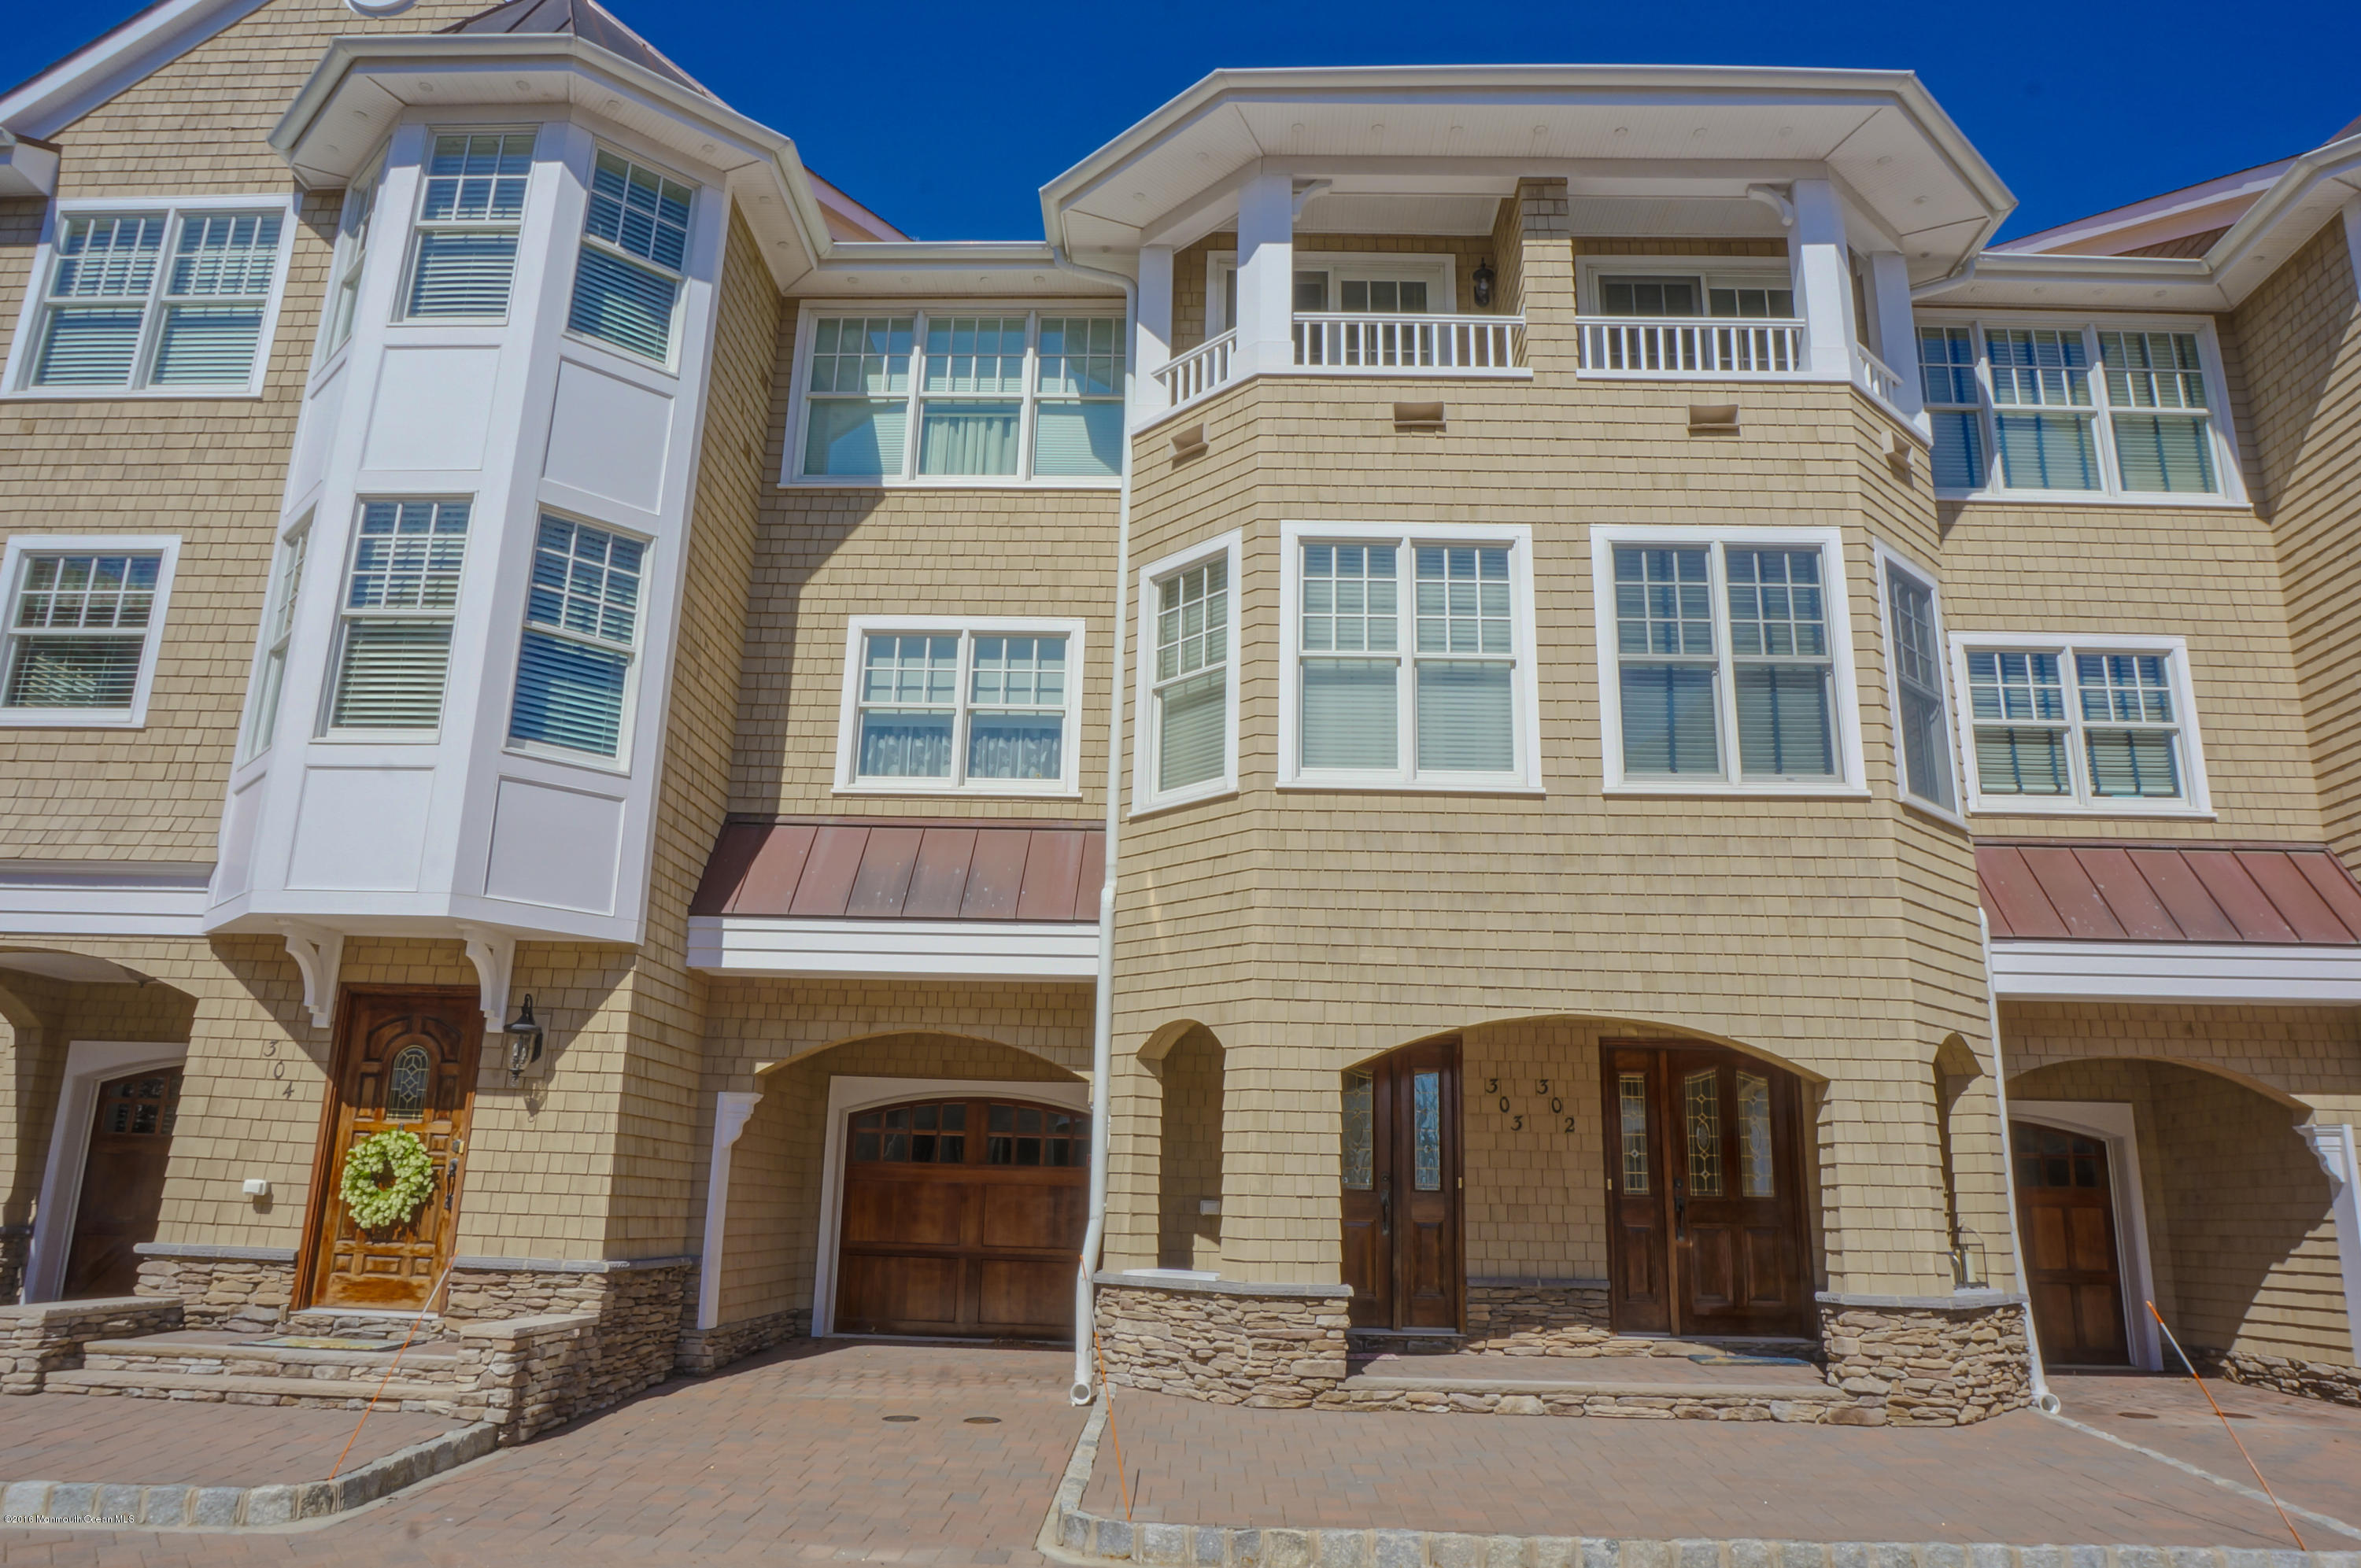 Photo of home for sale at 303 River Mist Way Way, Brielle NJ